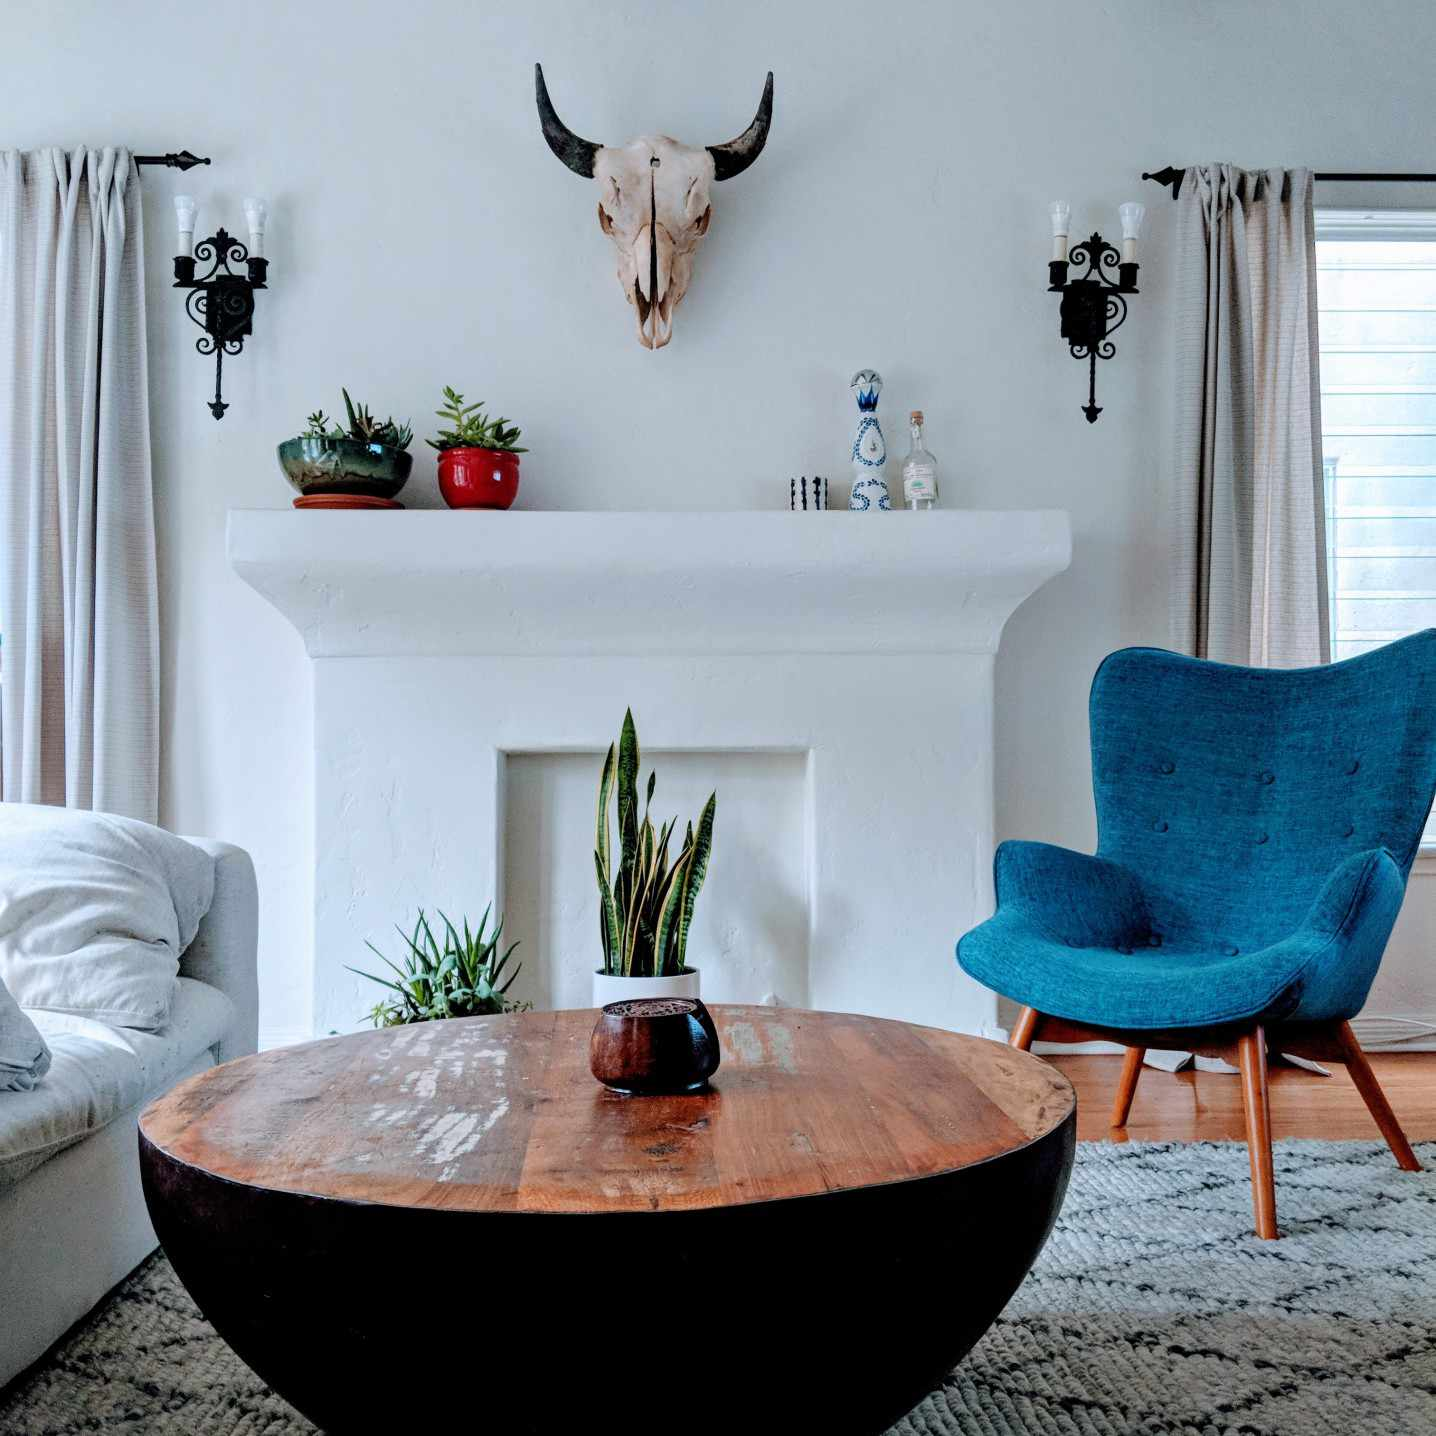 Boho chic living room with circular table, blue chair, faux fireplace, and bull head on the wall.